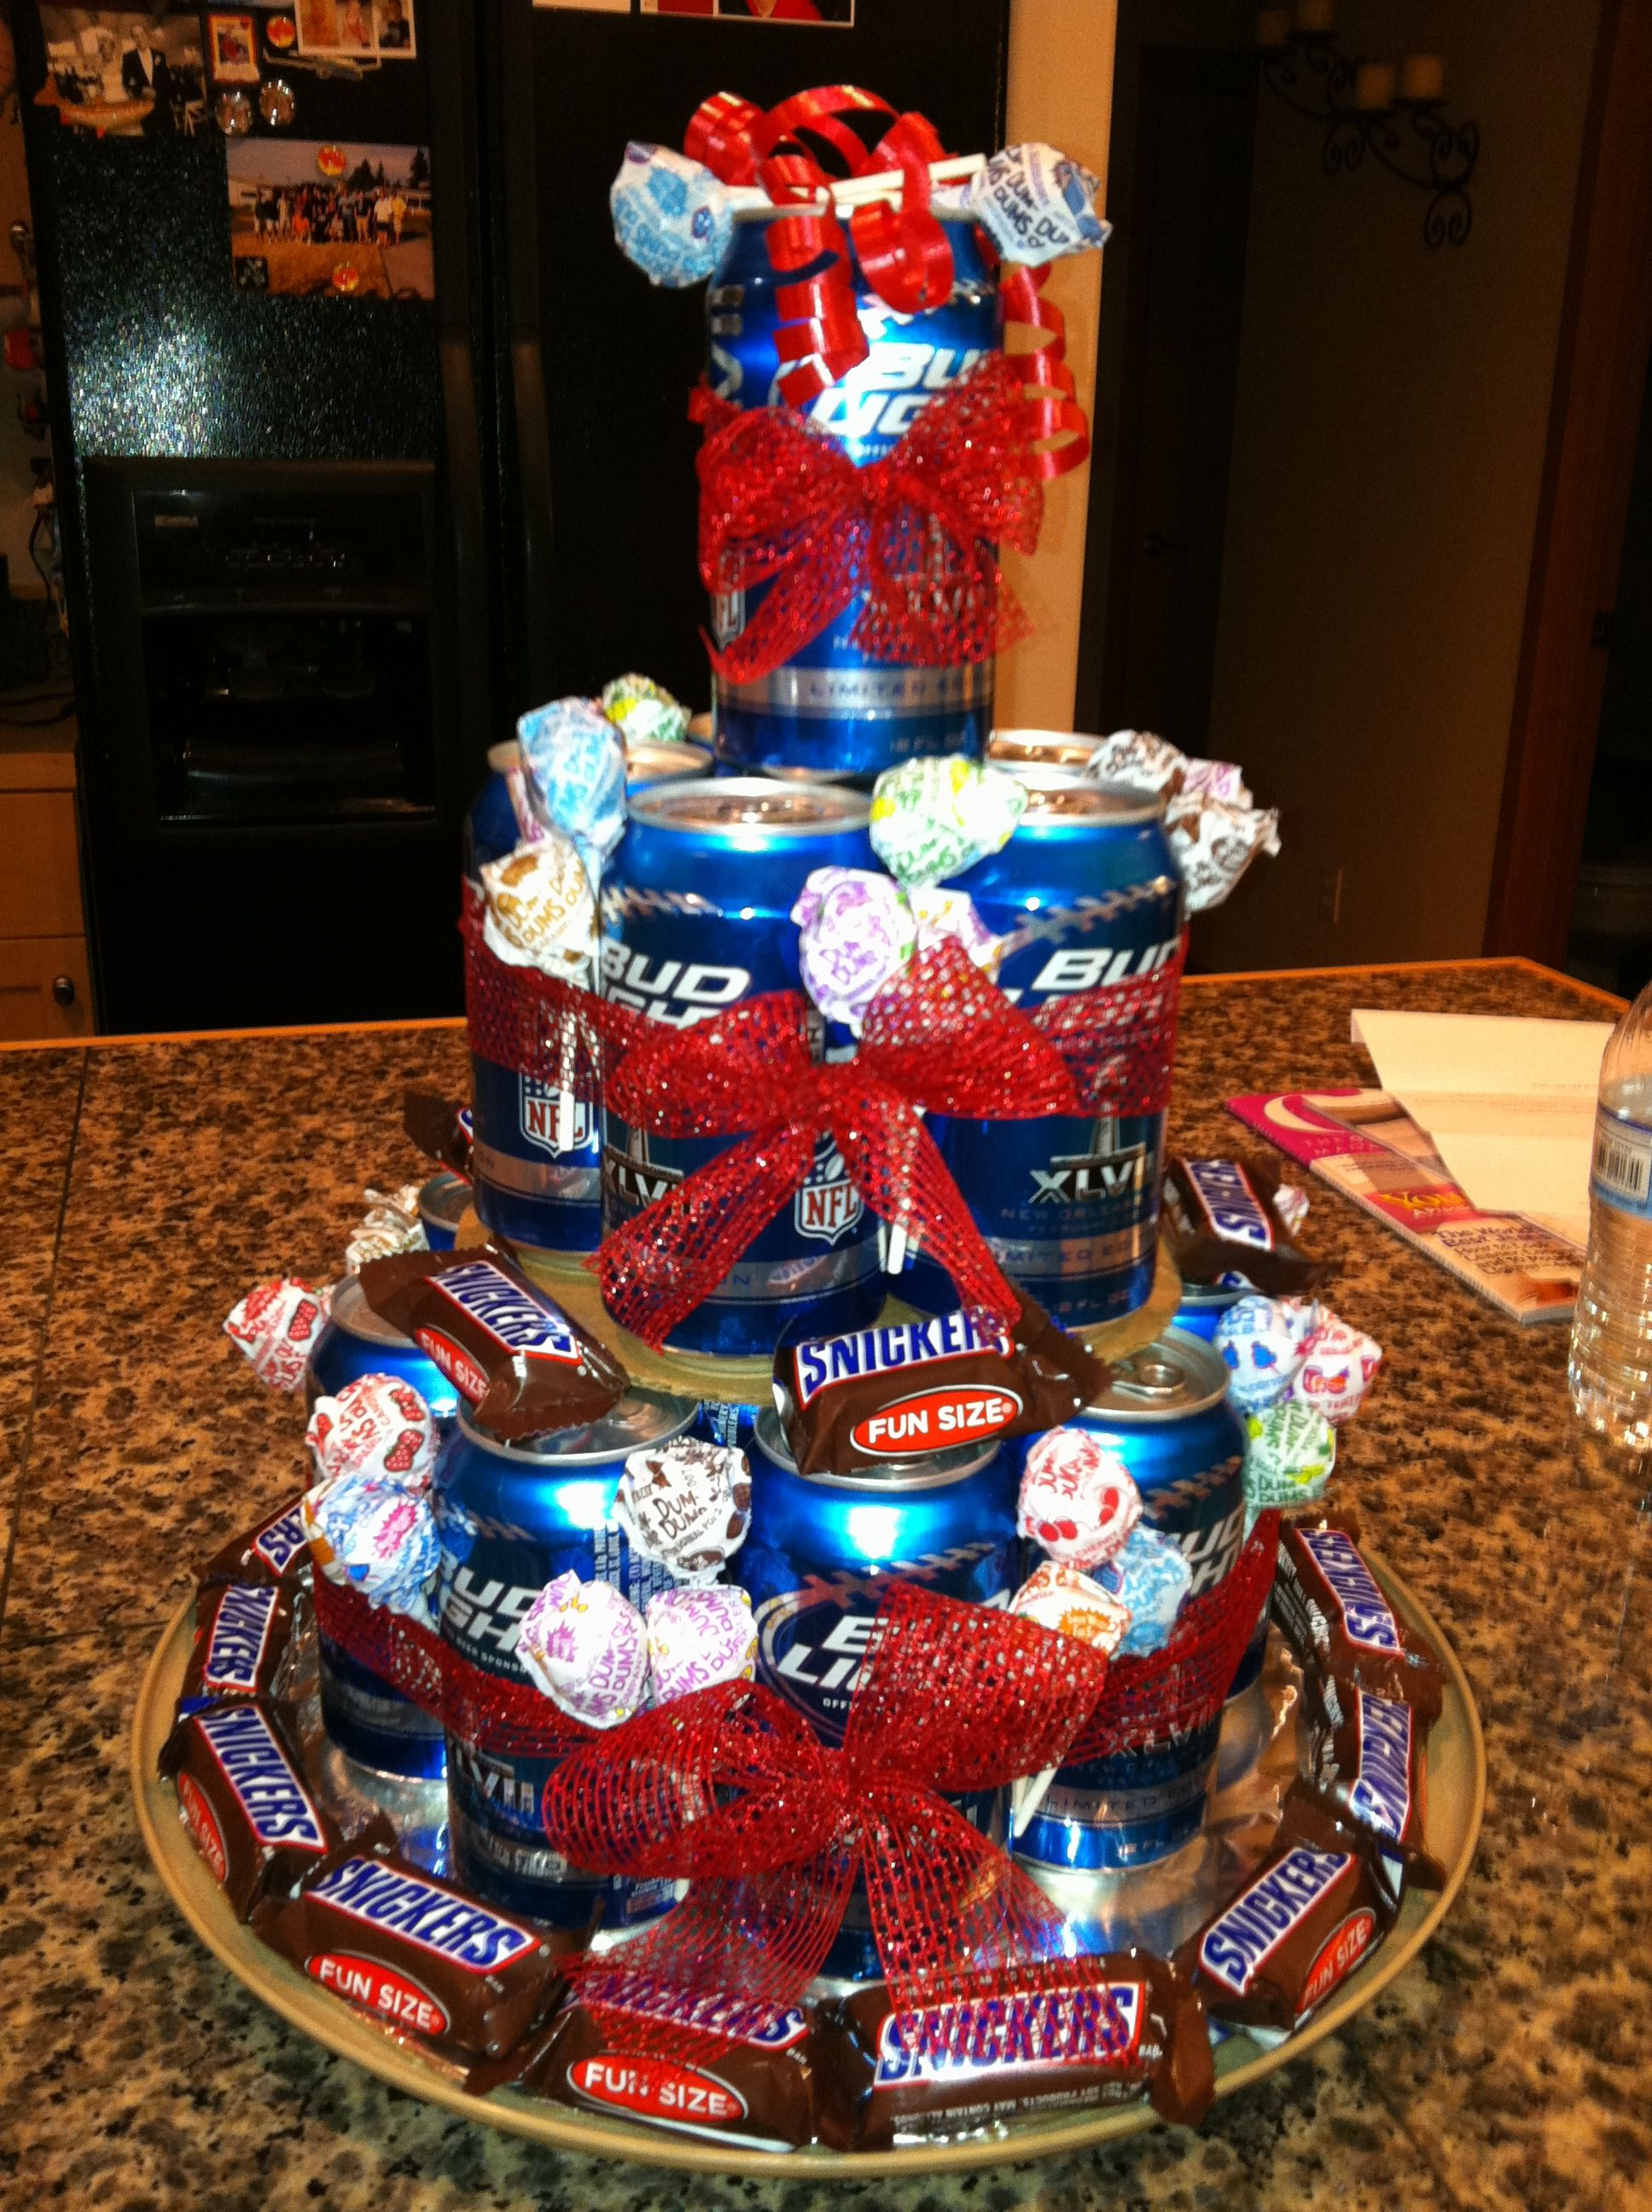 Beer and candy birthday cake! (With images) Candy